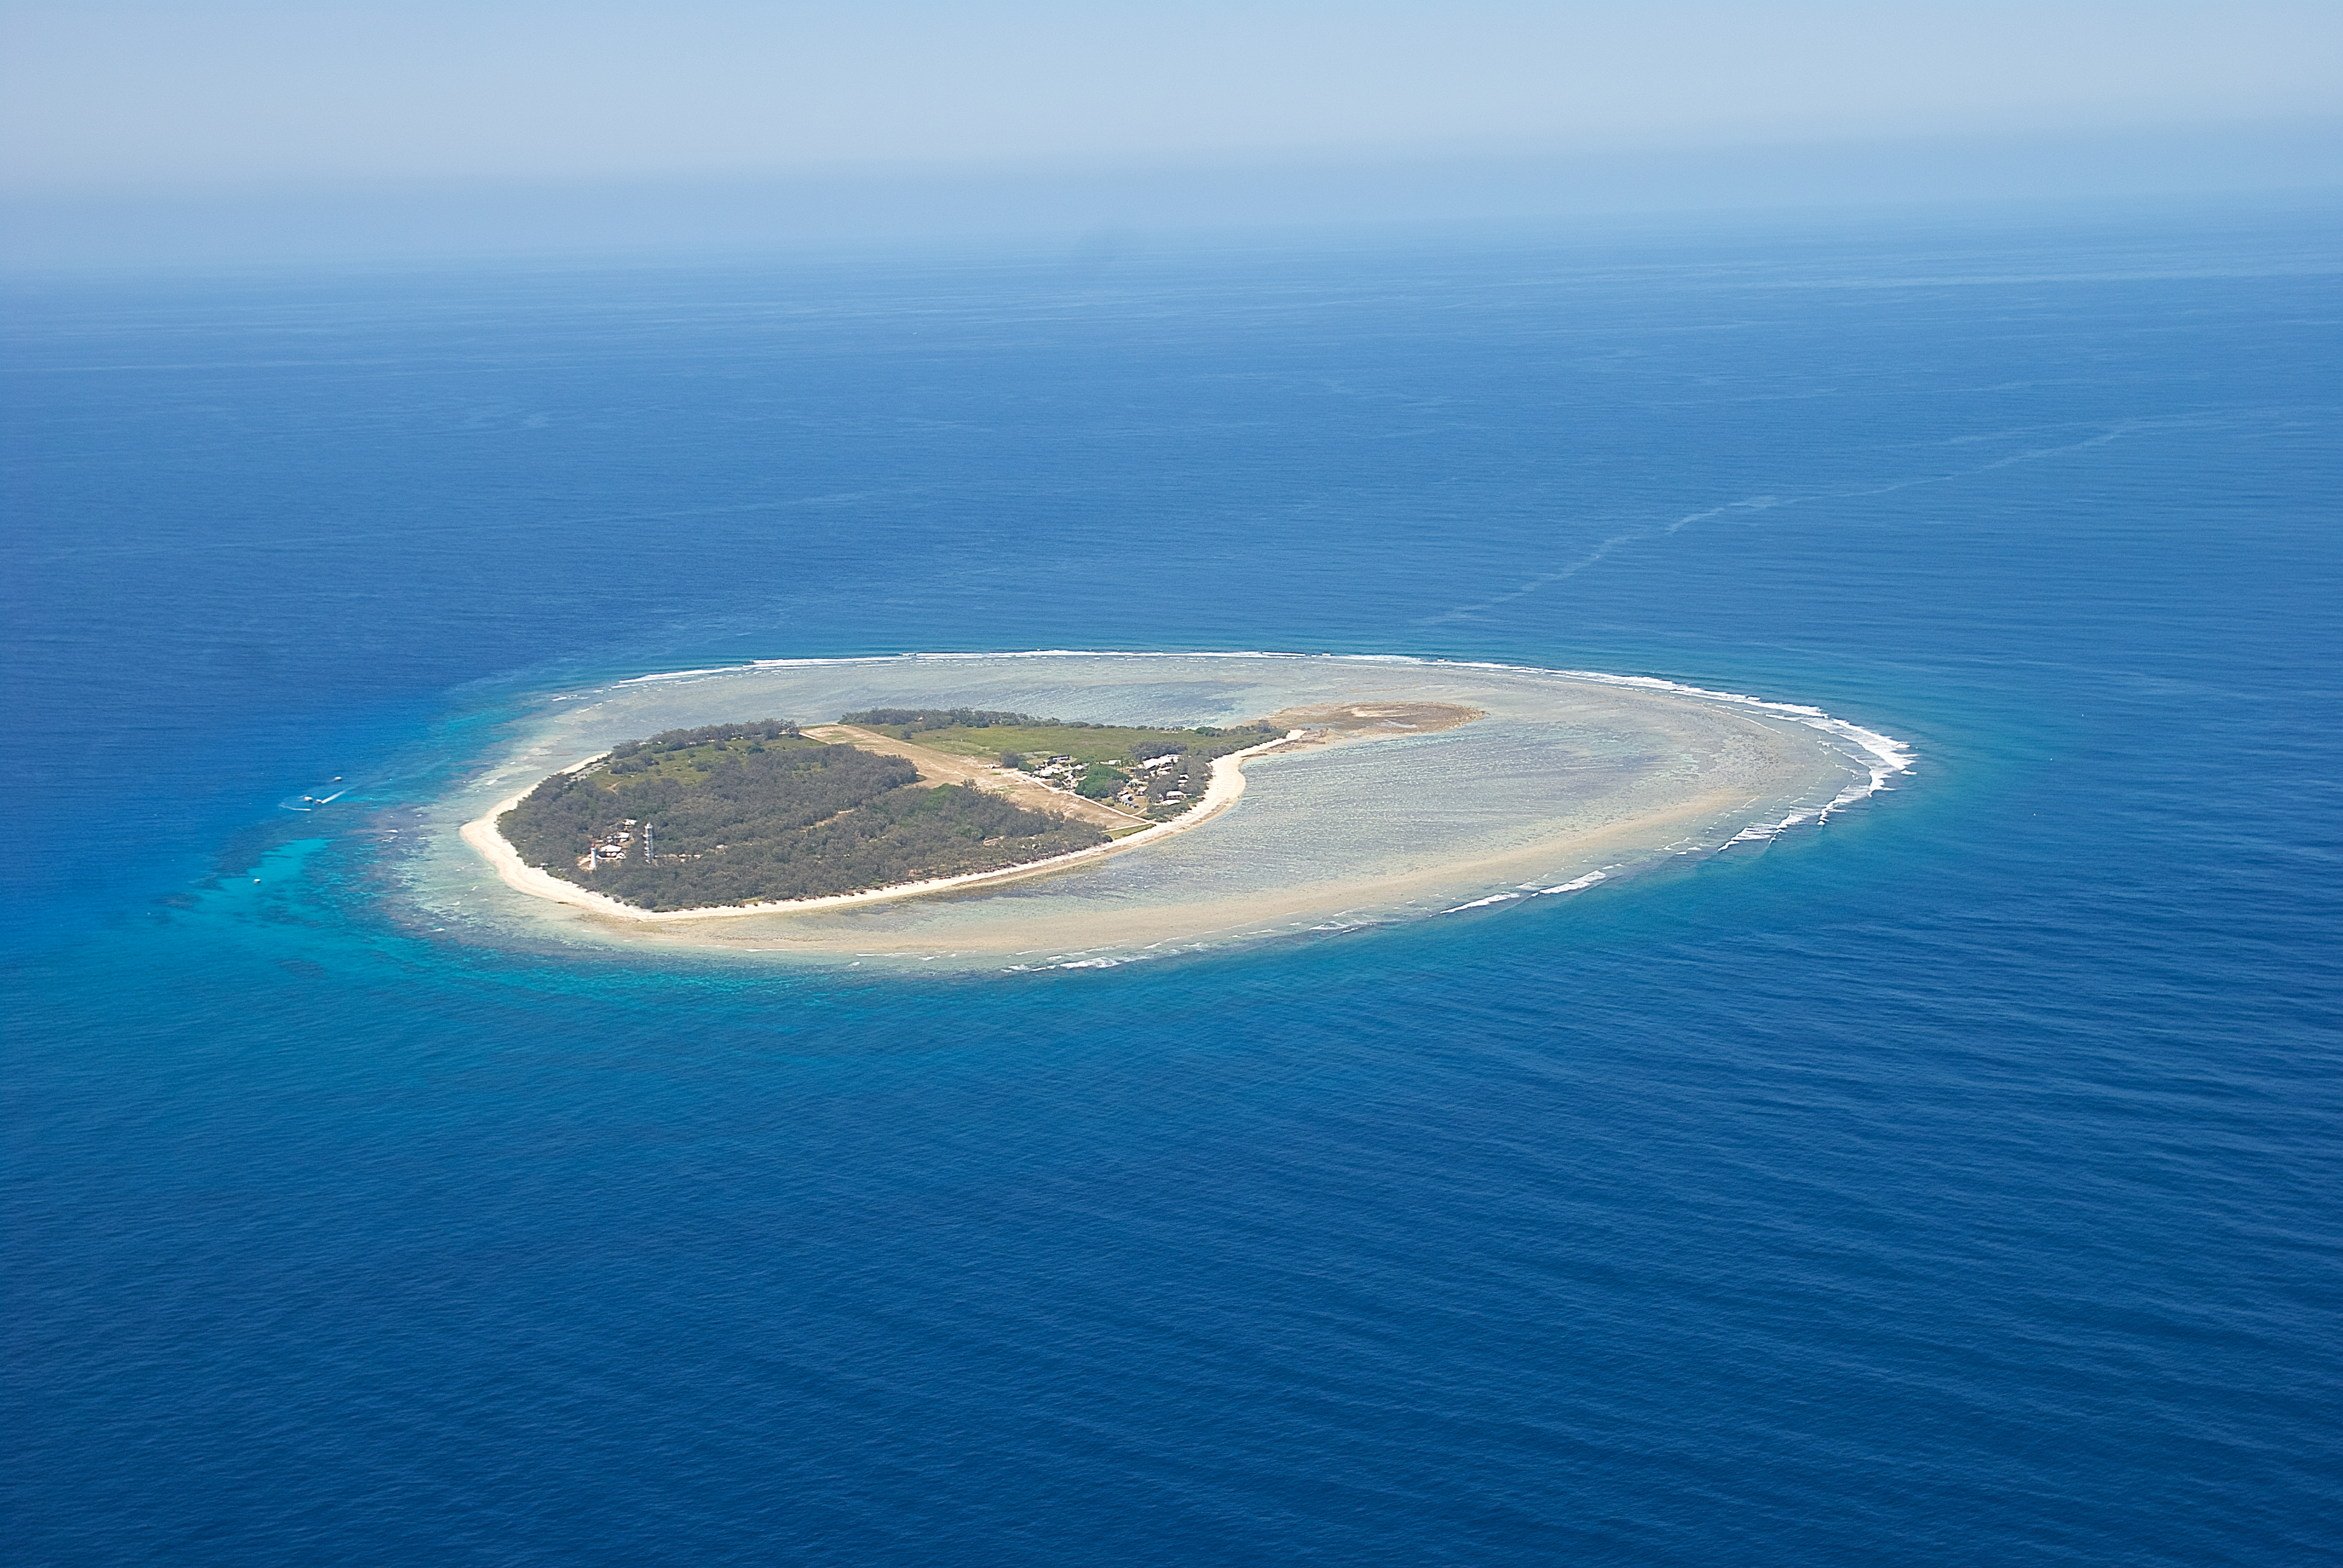 Lady Elliot Island, photo taken by us through windows of the plane. A beautiful clear day. The lagoon is clearly visible